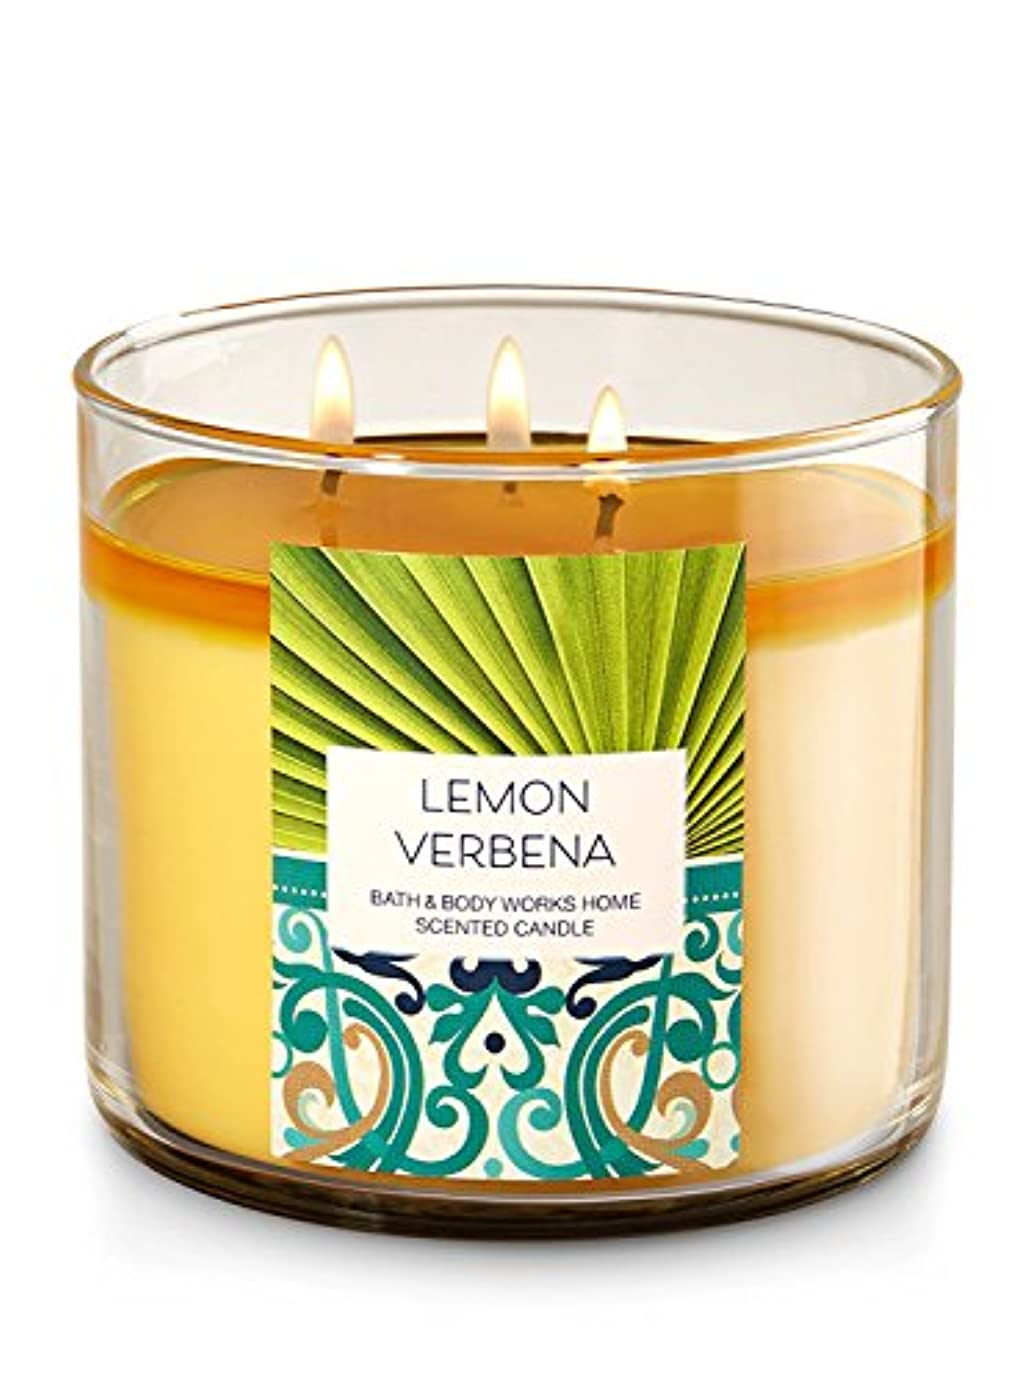 Bath & Body Works Lemon Verbena 3 Wick Candle – 14.5oz Fall 2016